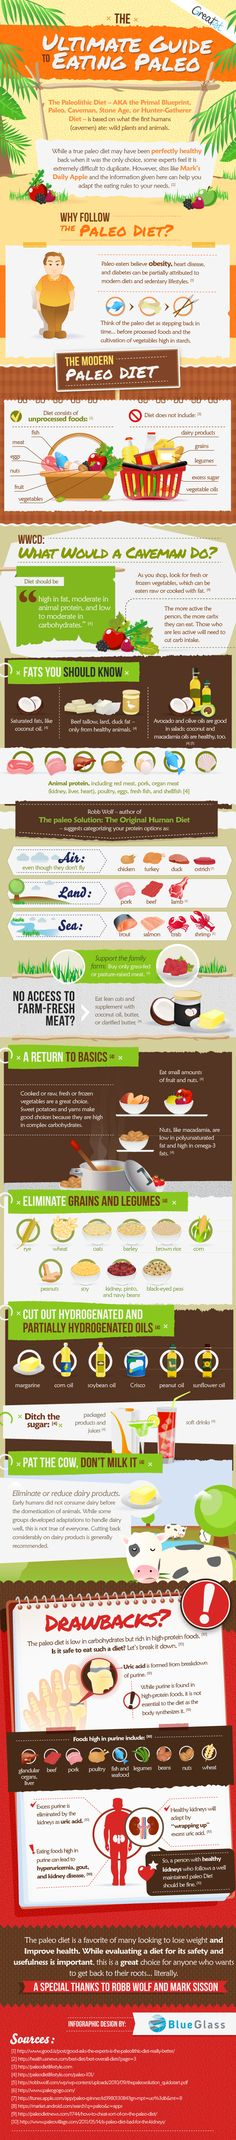 Lots of good advice, though I'm not so much into the meat aspect of paleo/primal.